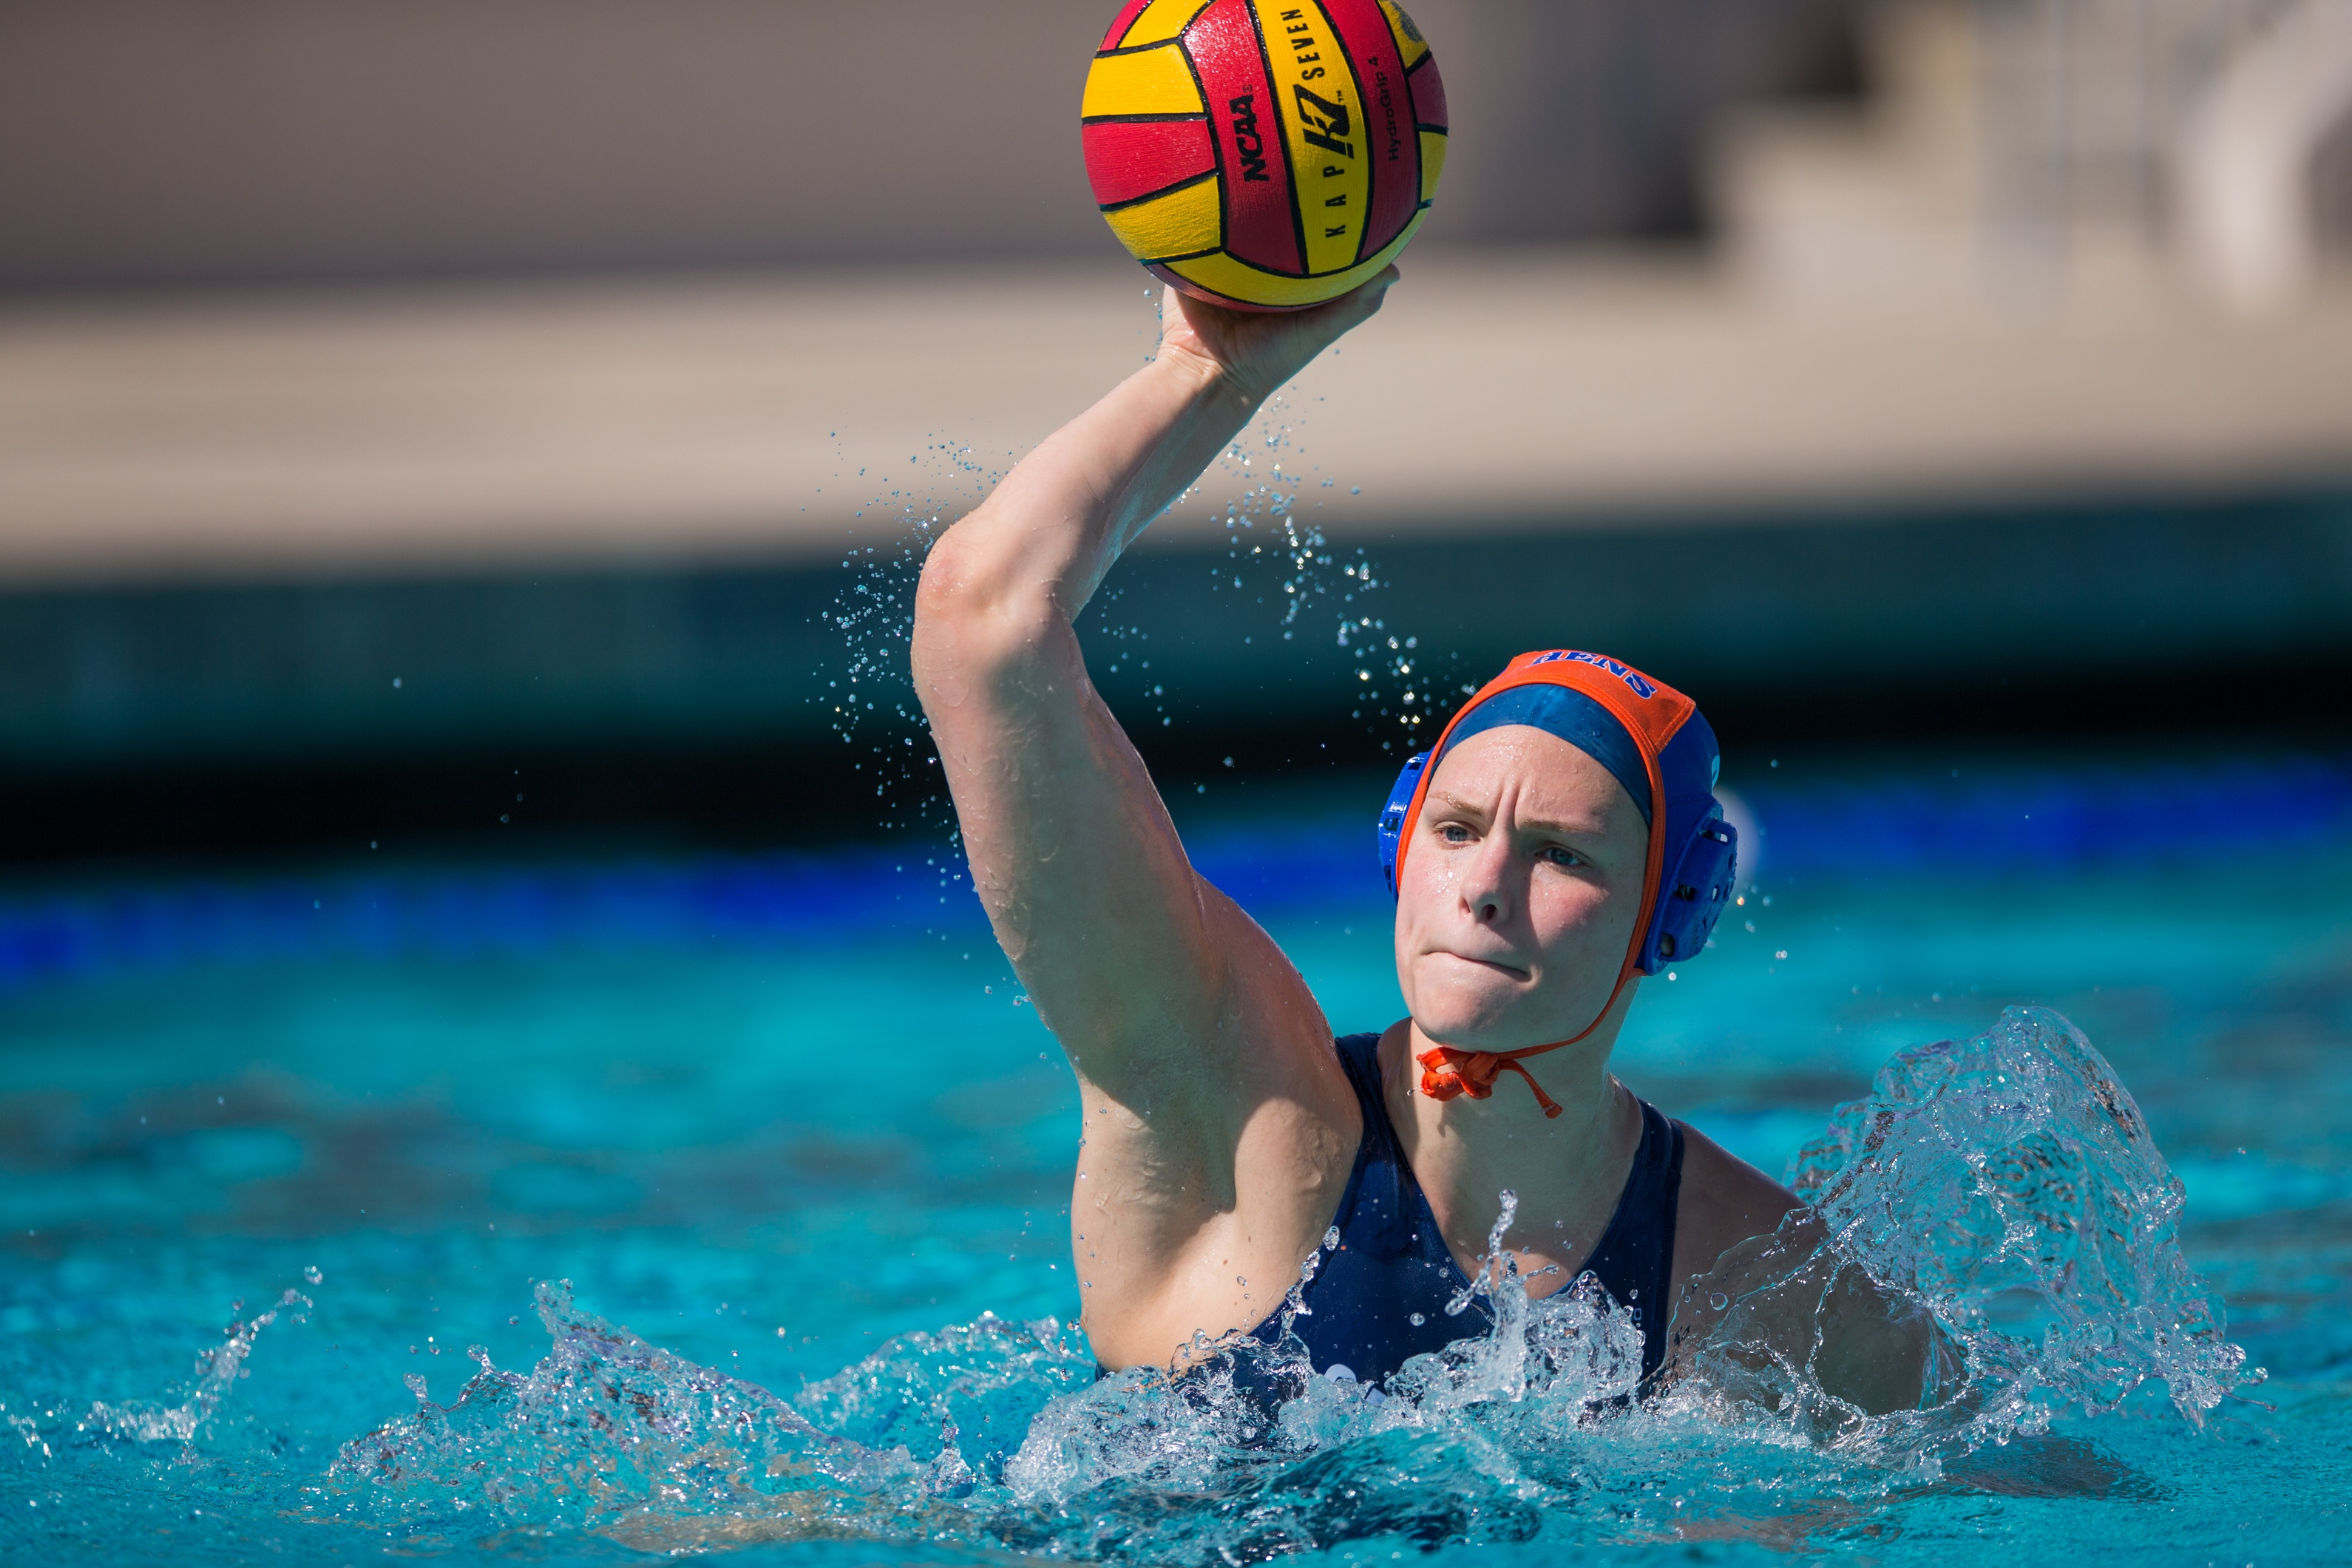 Association of Collegiate Water Polo Coaches Announces 2017 Women's All-Academic Awards